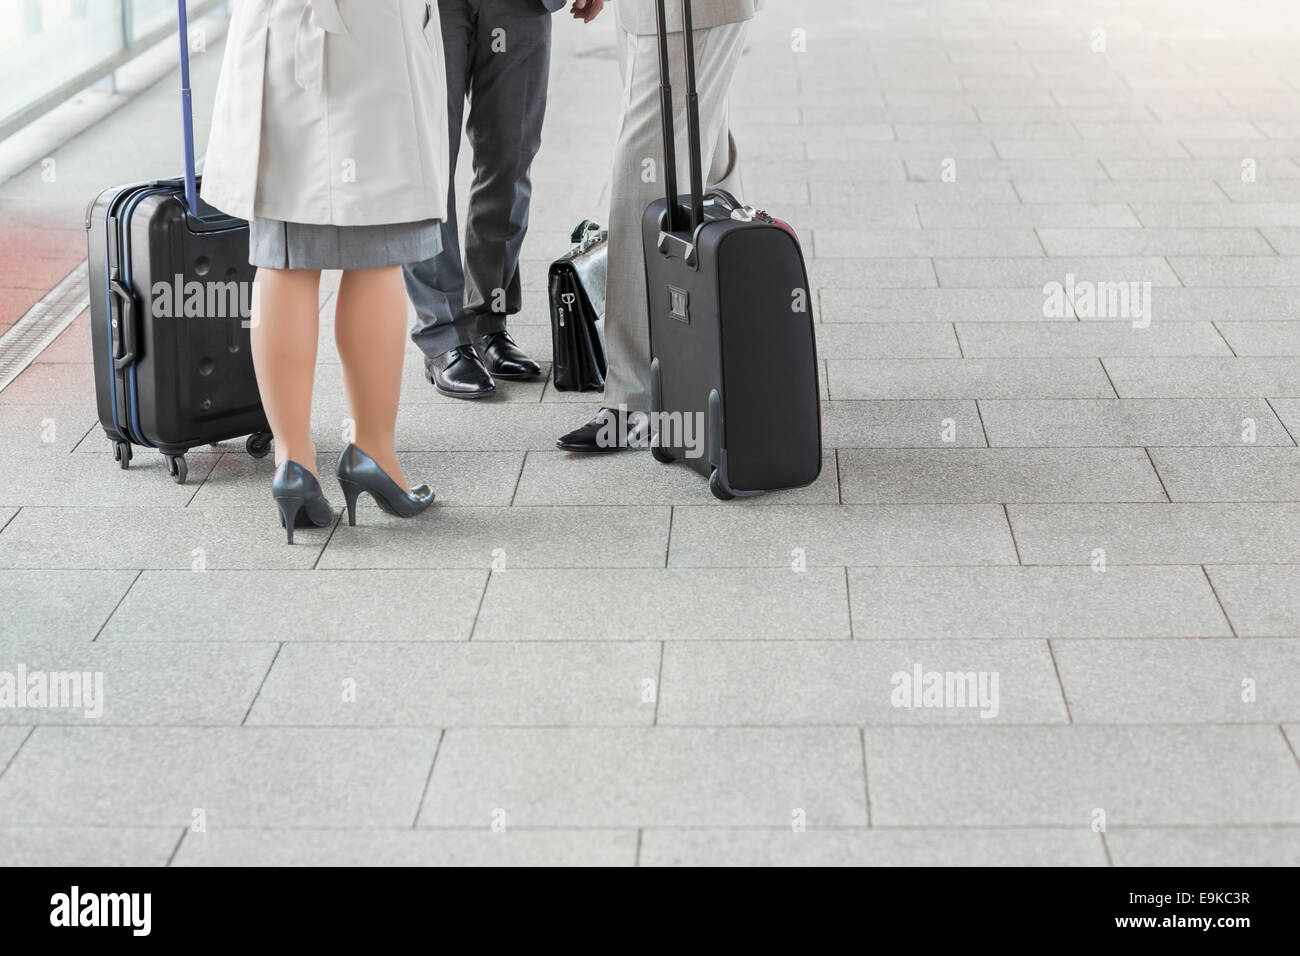 Low section of businesspeople with luggage standing on railroad platform Stock Photo